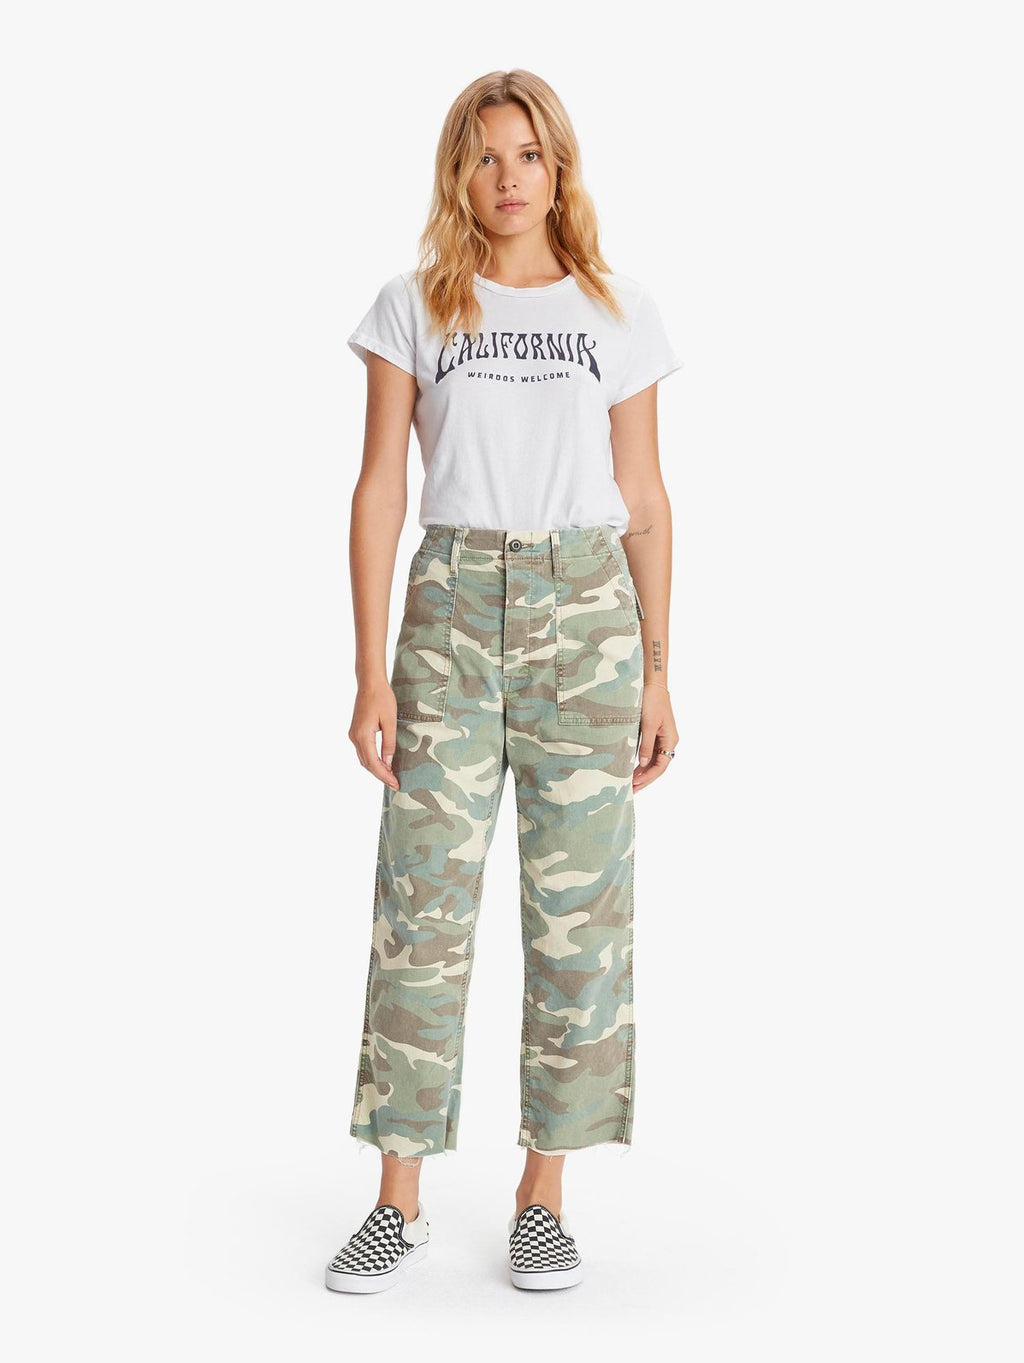 The Patch Pocket Private Ankle Fray Camouflage